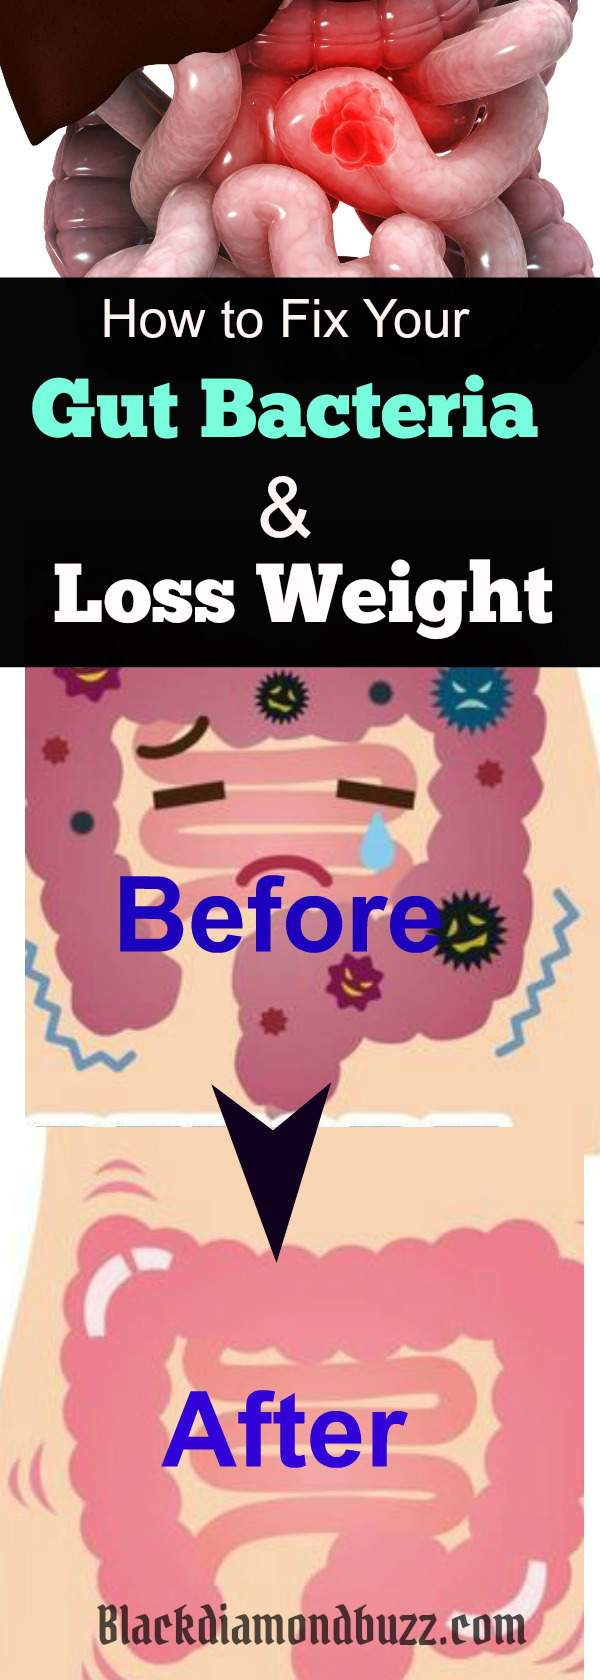 8 Best Ways to Increase Your Good Gut Bacteria and Weight Loss Naturally